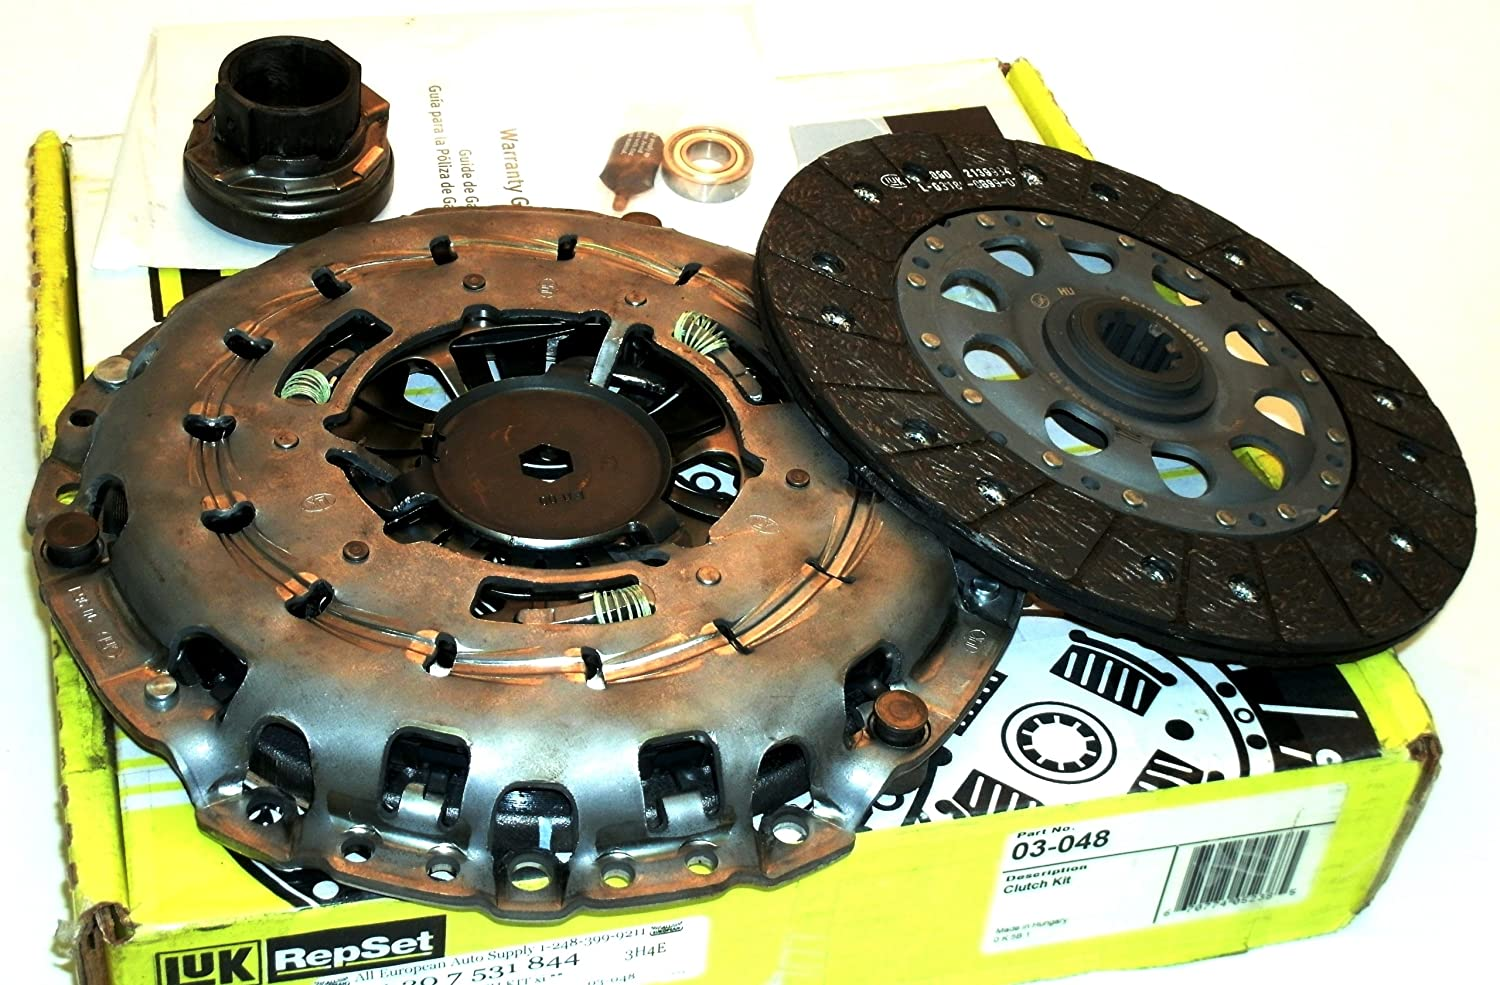 Amazon.com: OEM BMW (E46) CLUTCH KIT 330xi (01-03) - LUK 03-048 21207531844: Automotive